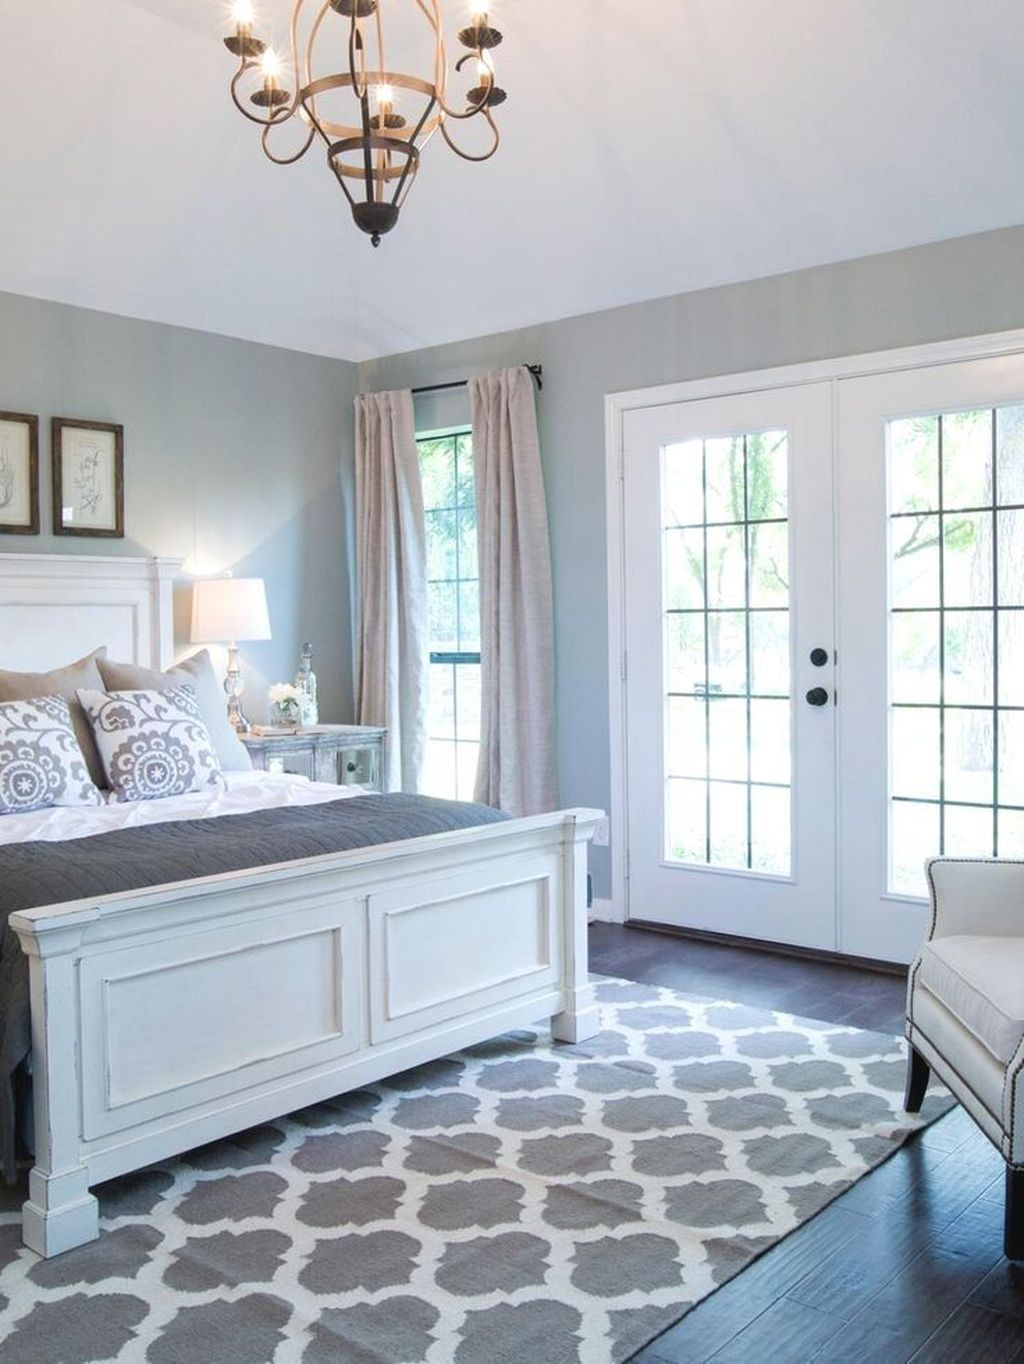 The Best Small Master Bedroom Design Ideas WIth Farmhouse Style 07